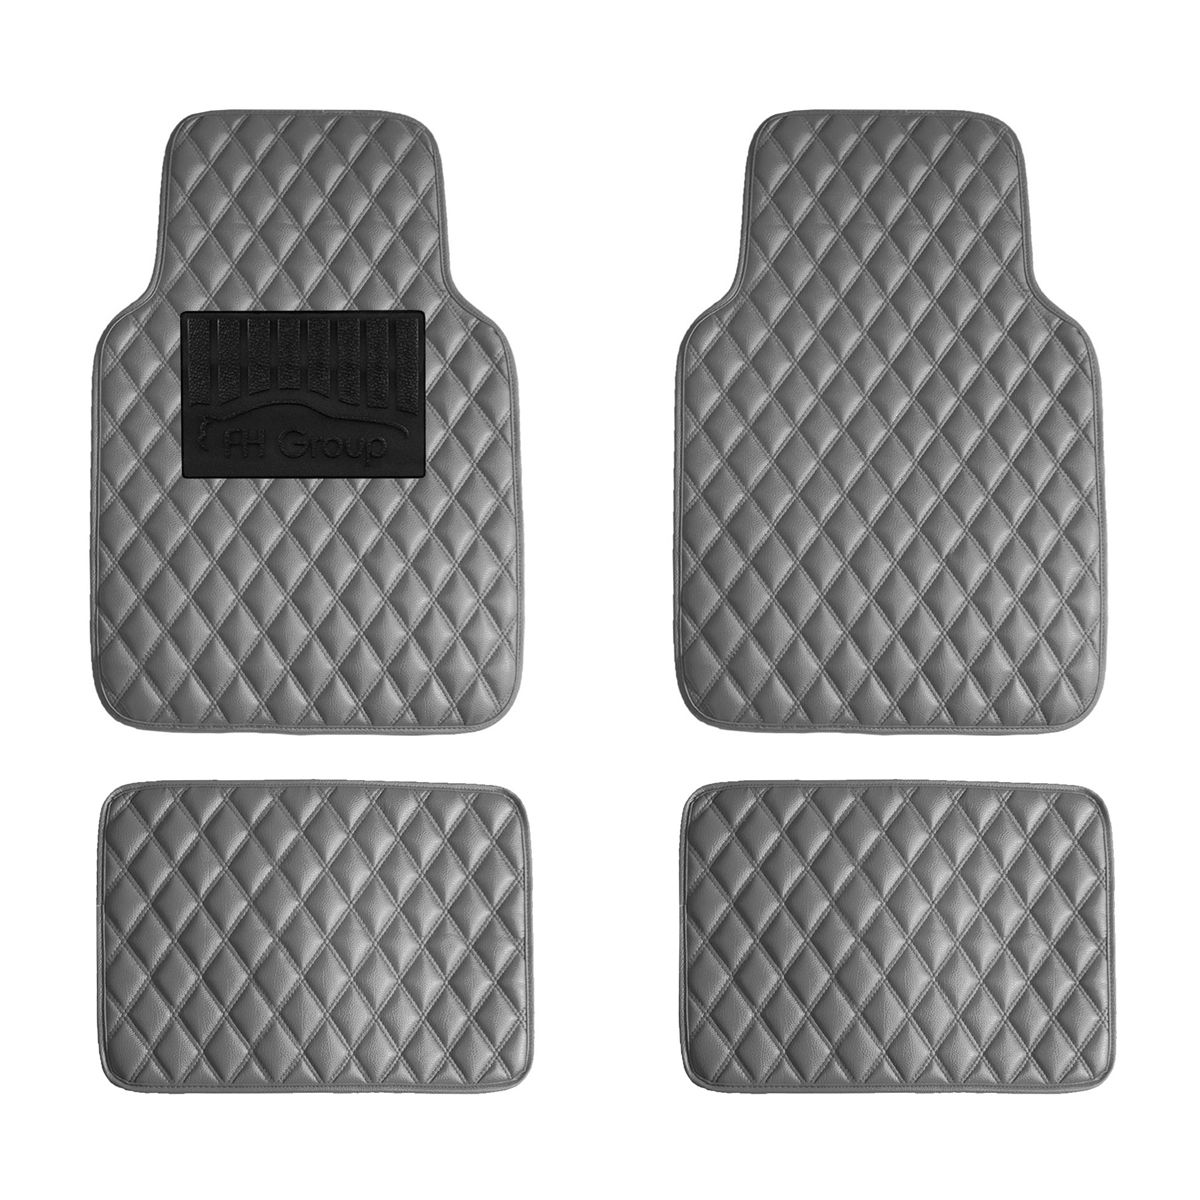 Luxury Universal All Seasons Heavy Duty Faux Leather Car Floor Mats Diamond Design - Gray F12002-Gray 01